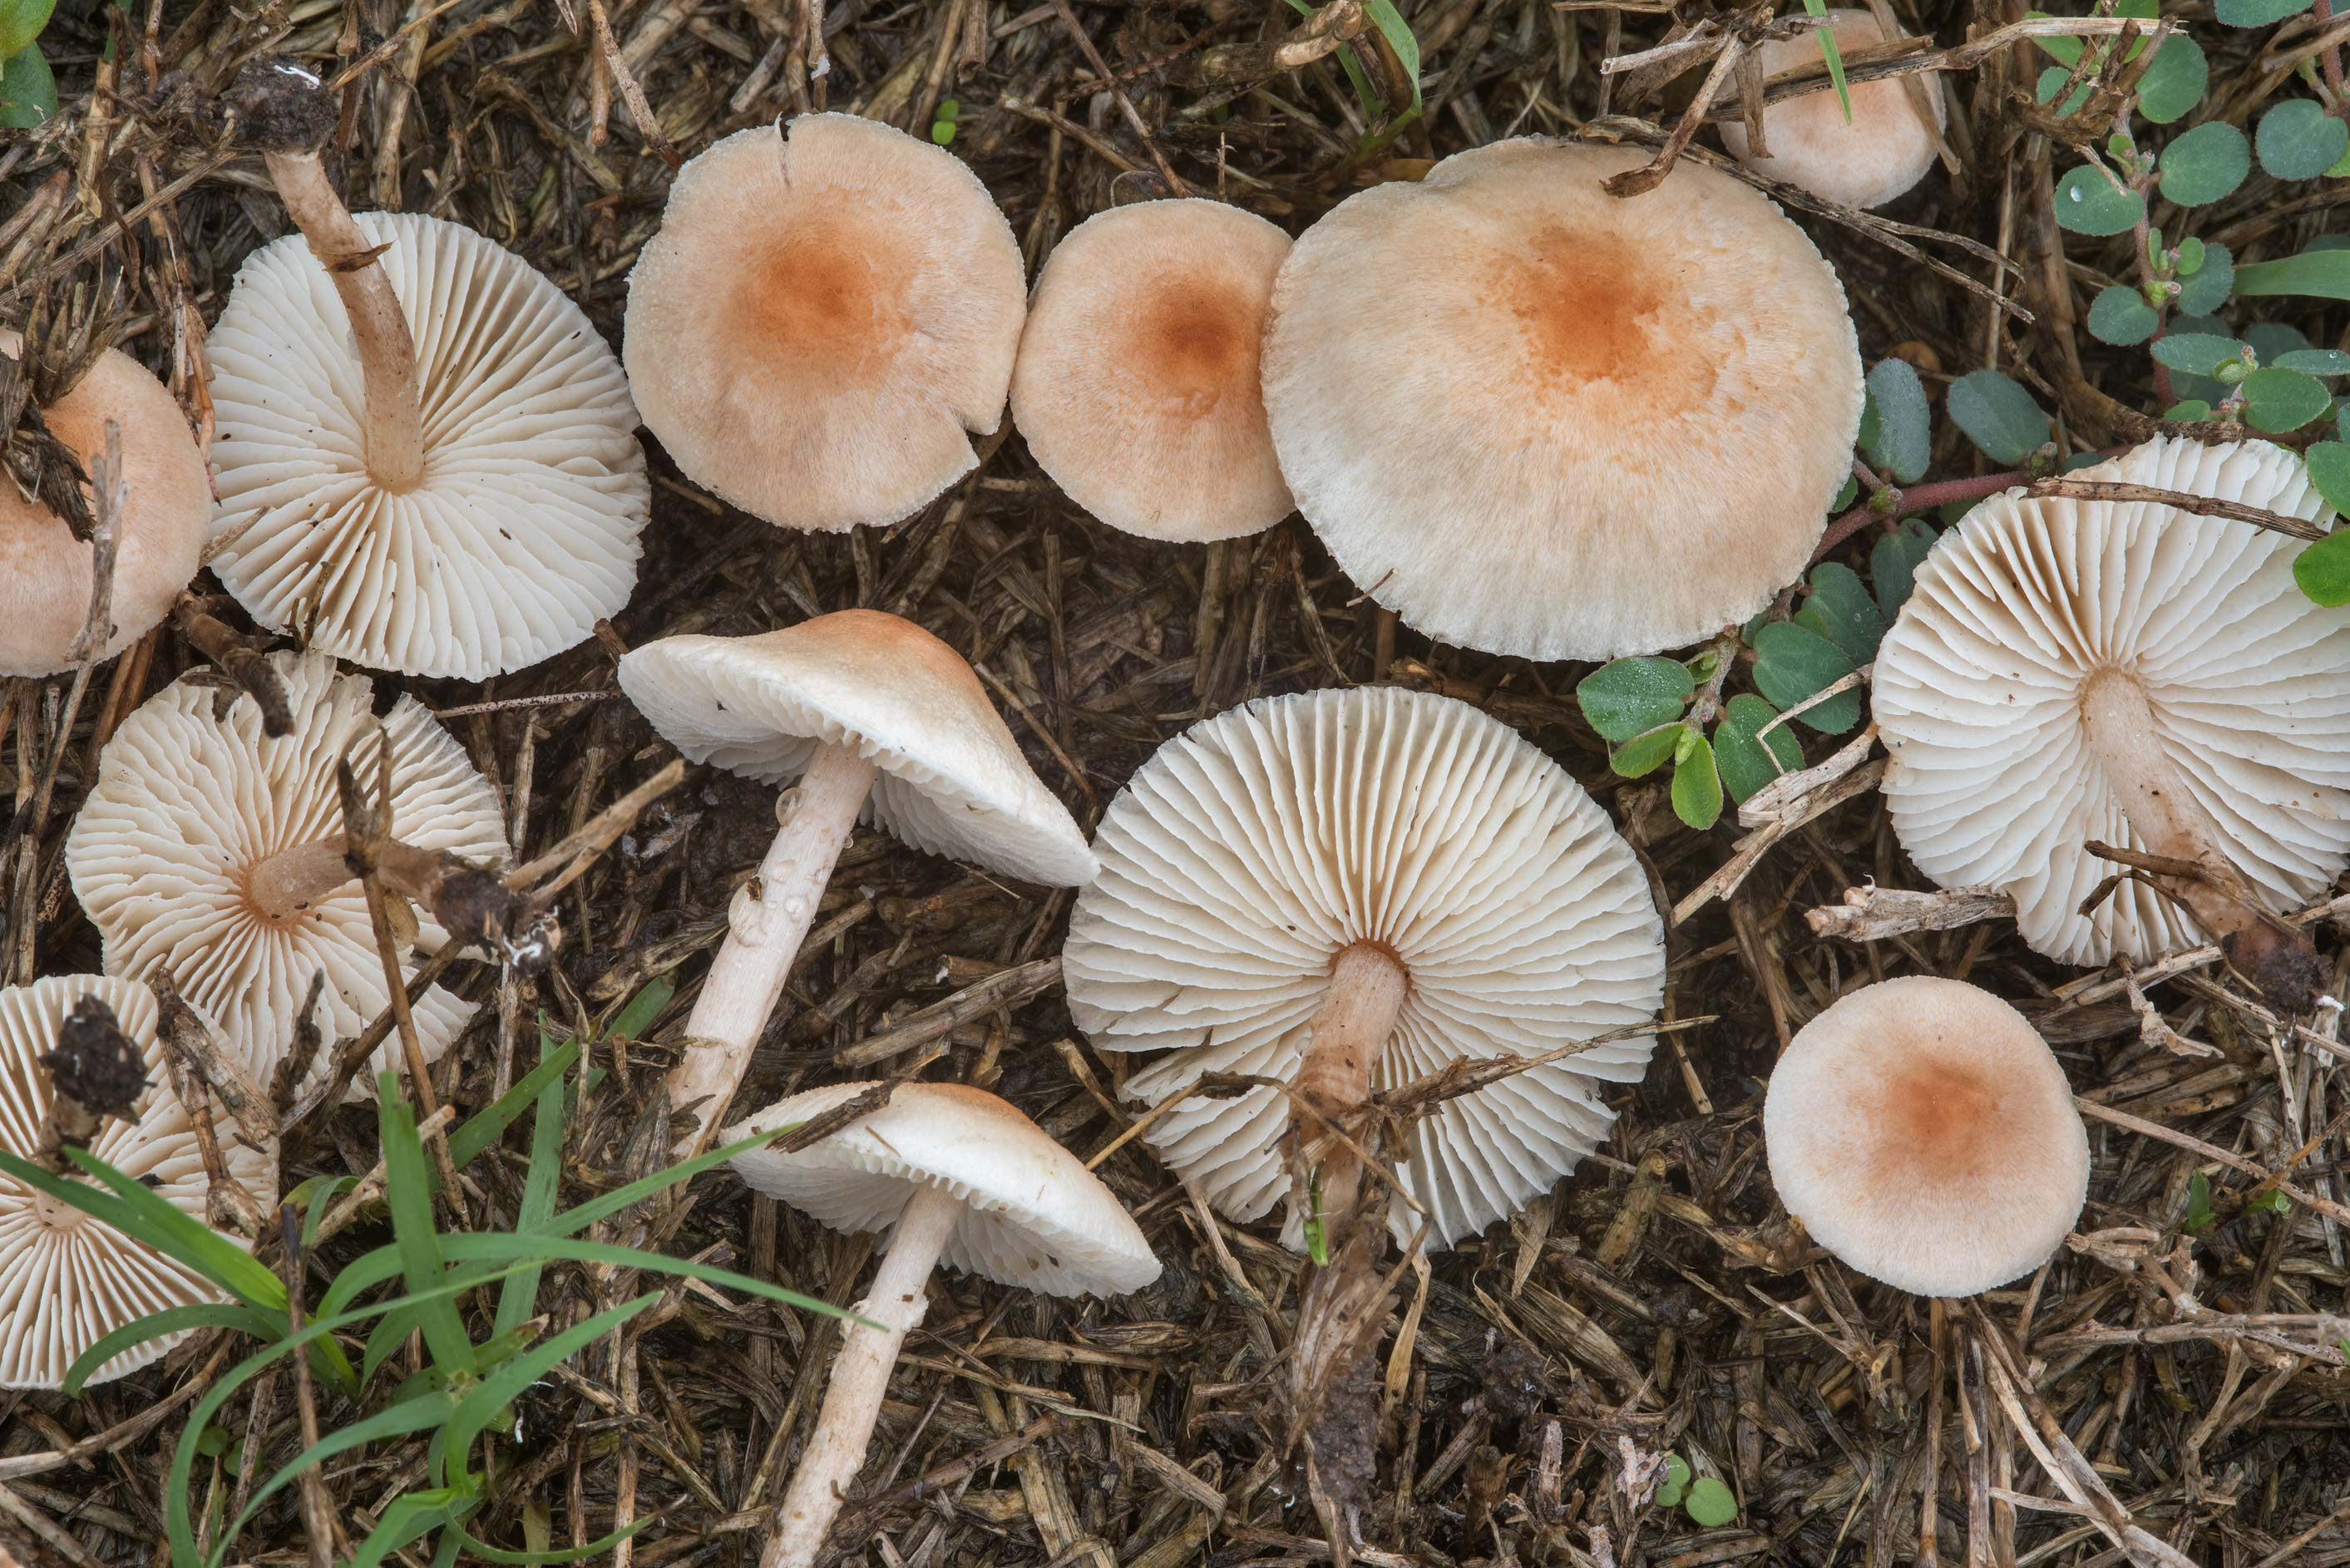 Small pink Lepiota mushrooms on a lawn in Bee Creek Park. College Station, Texas